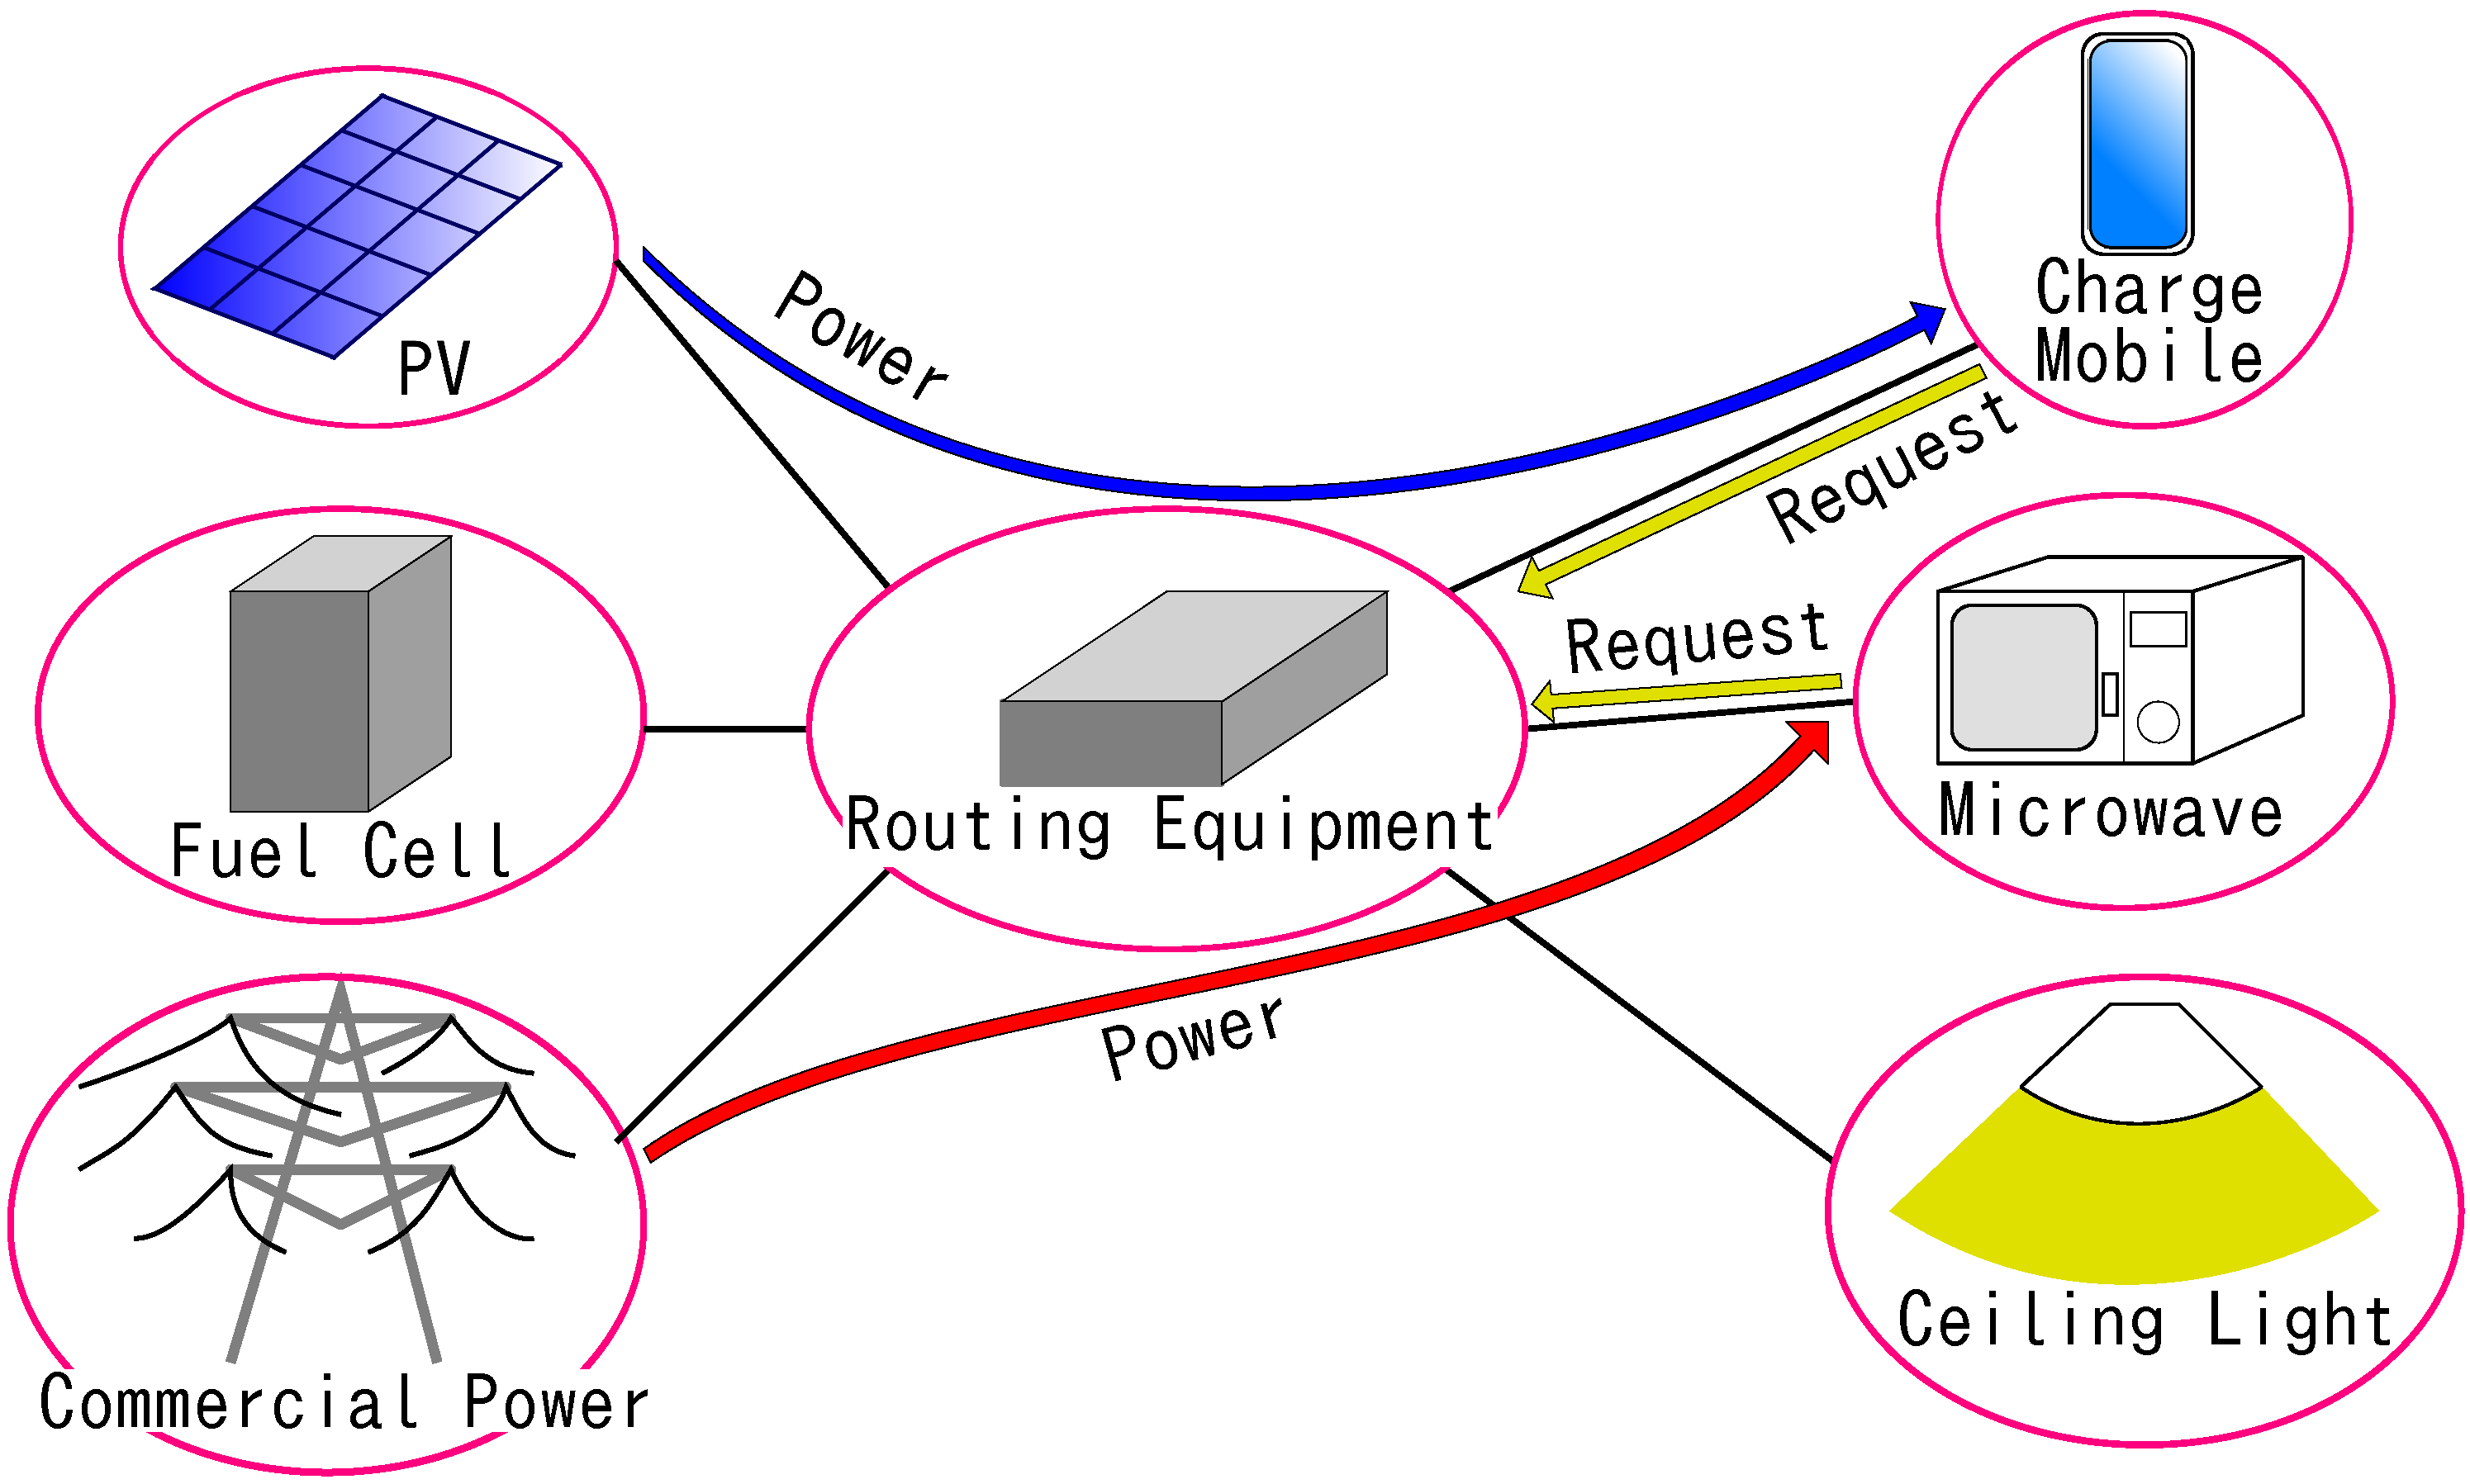 Energies | Free Full-Text | AC Power Routing System in Home Based on ...